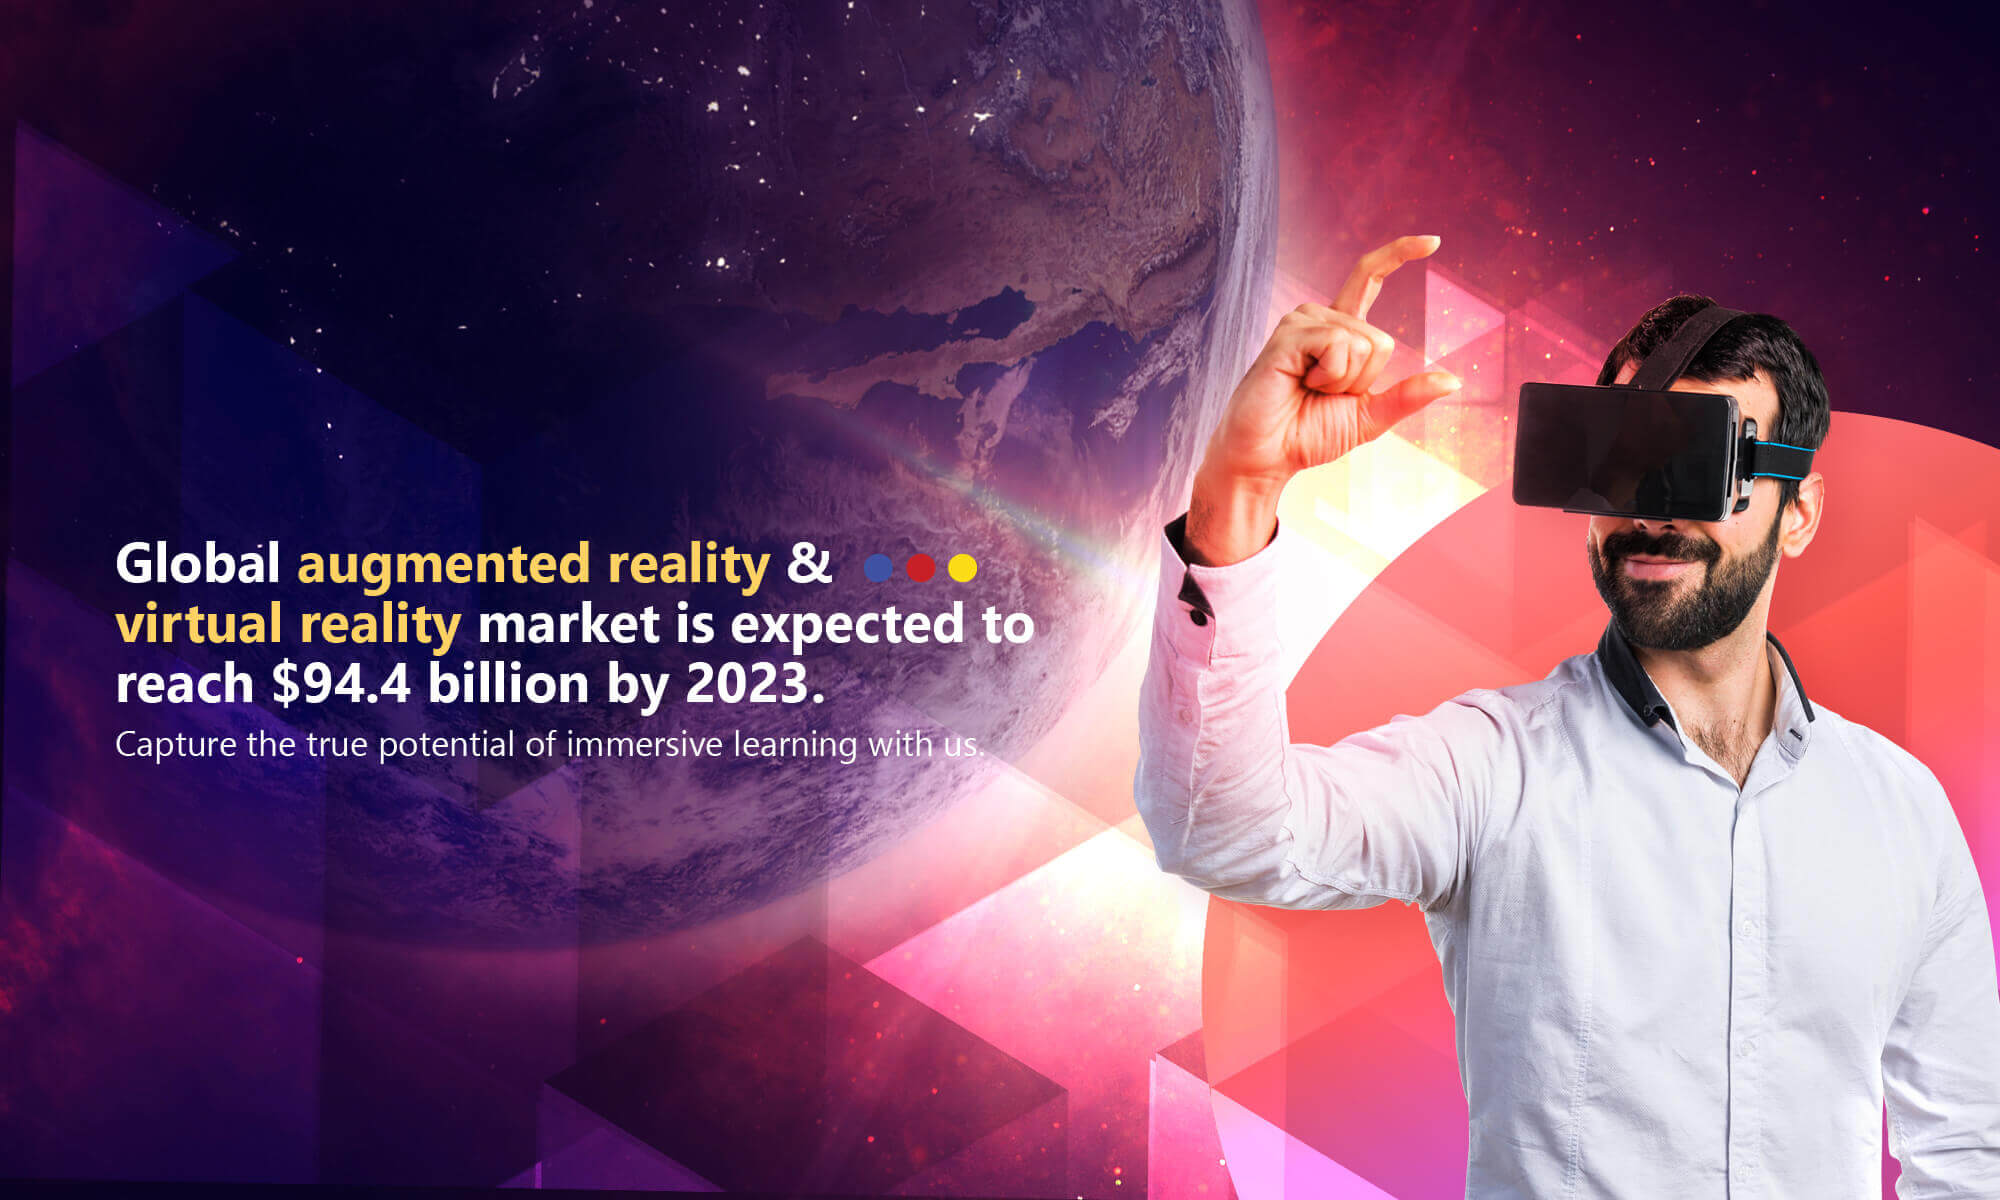 Reality technology solutions